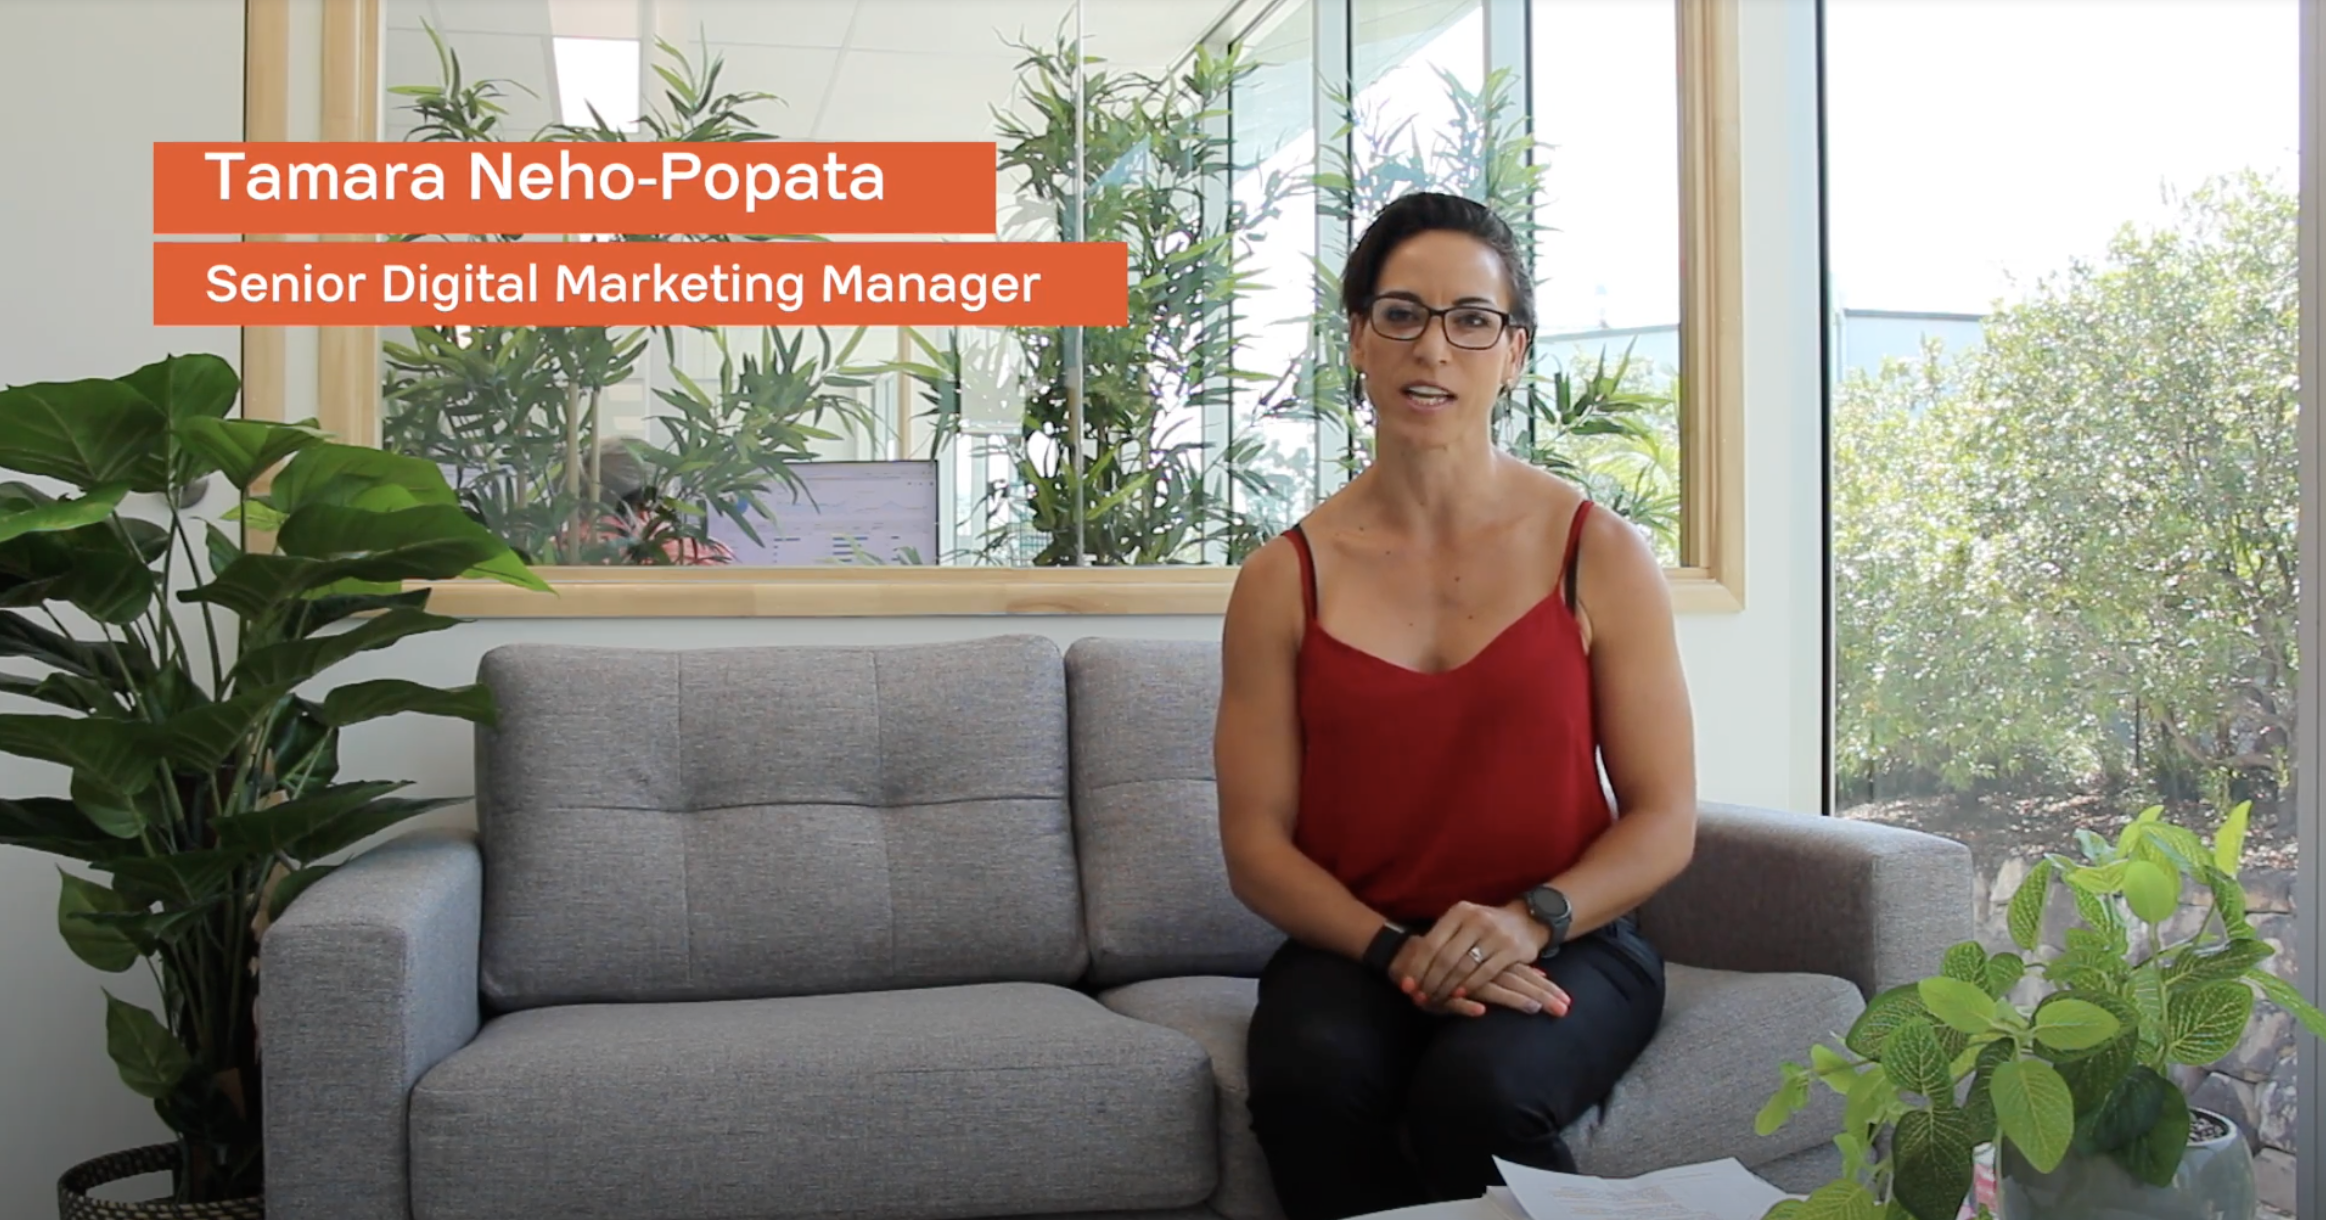 Tamara Neho-Popata discusses inbound marketing for healthcare professionals